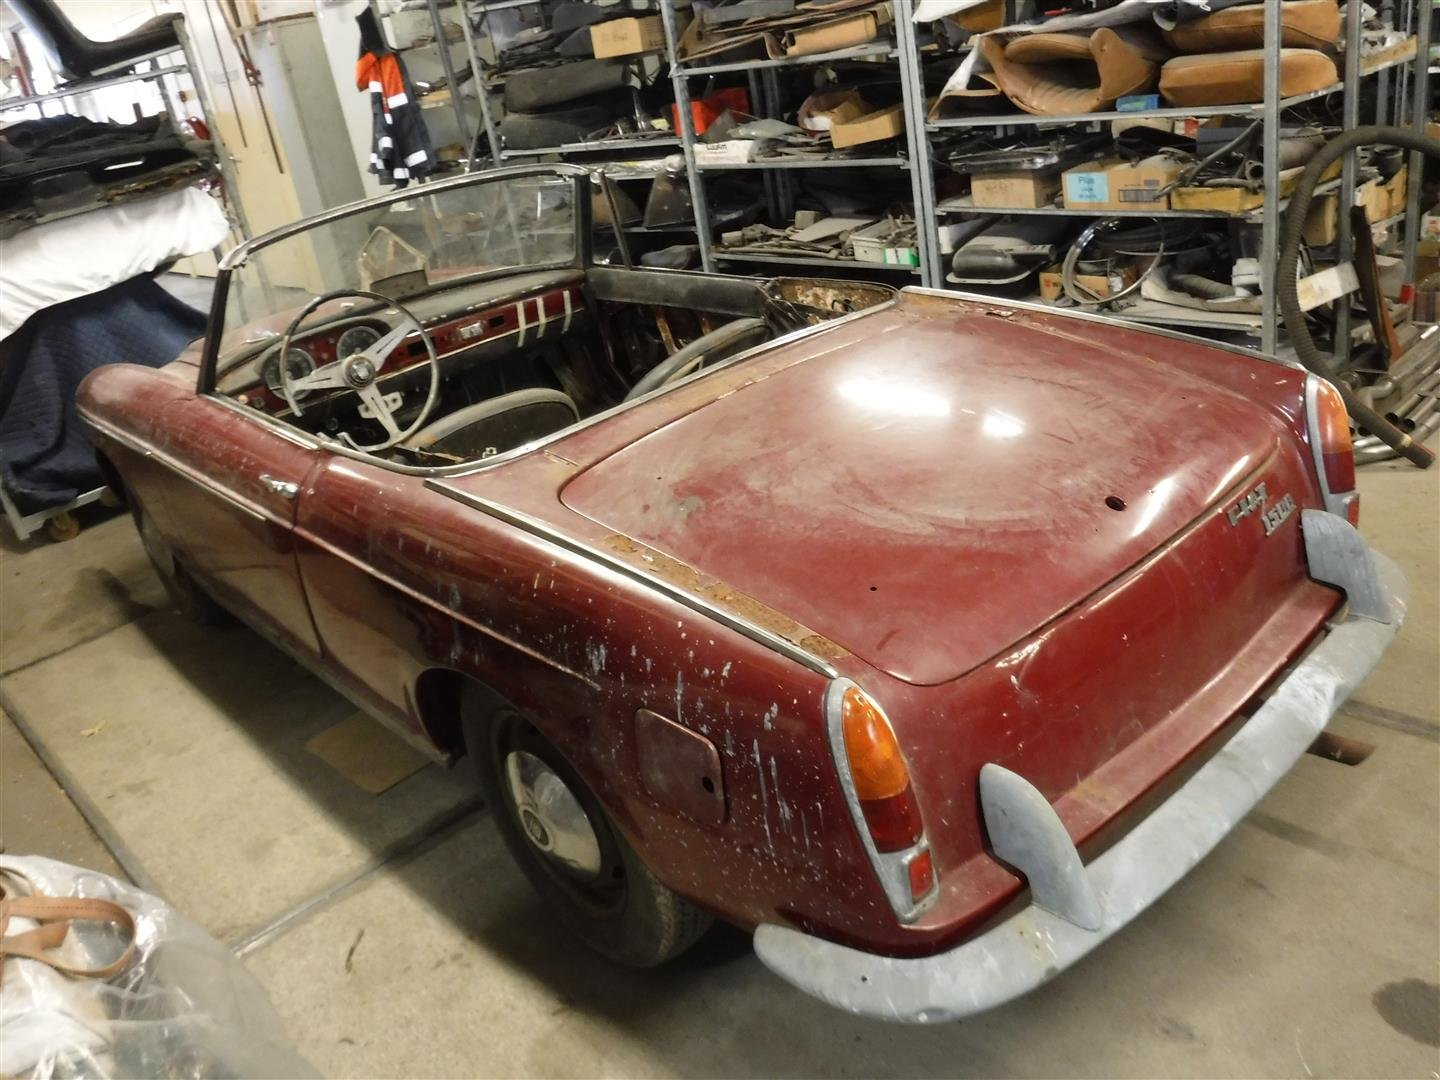 1960 Fiat Osca 1500 spider '60 For Sale (picture 2 of 6)